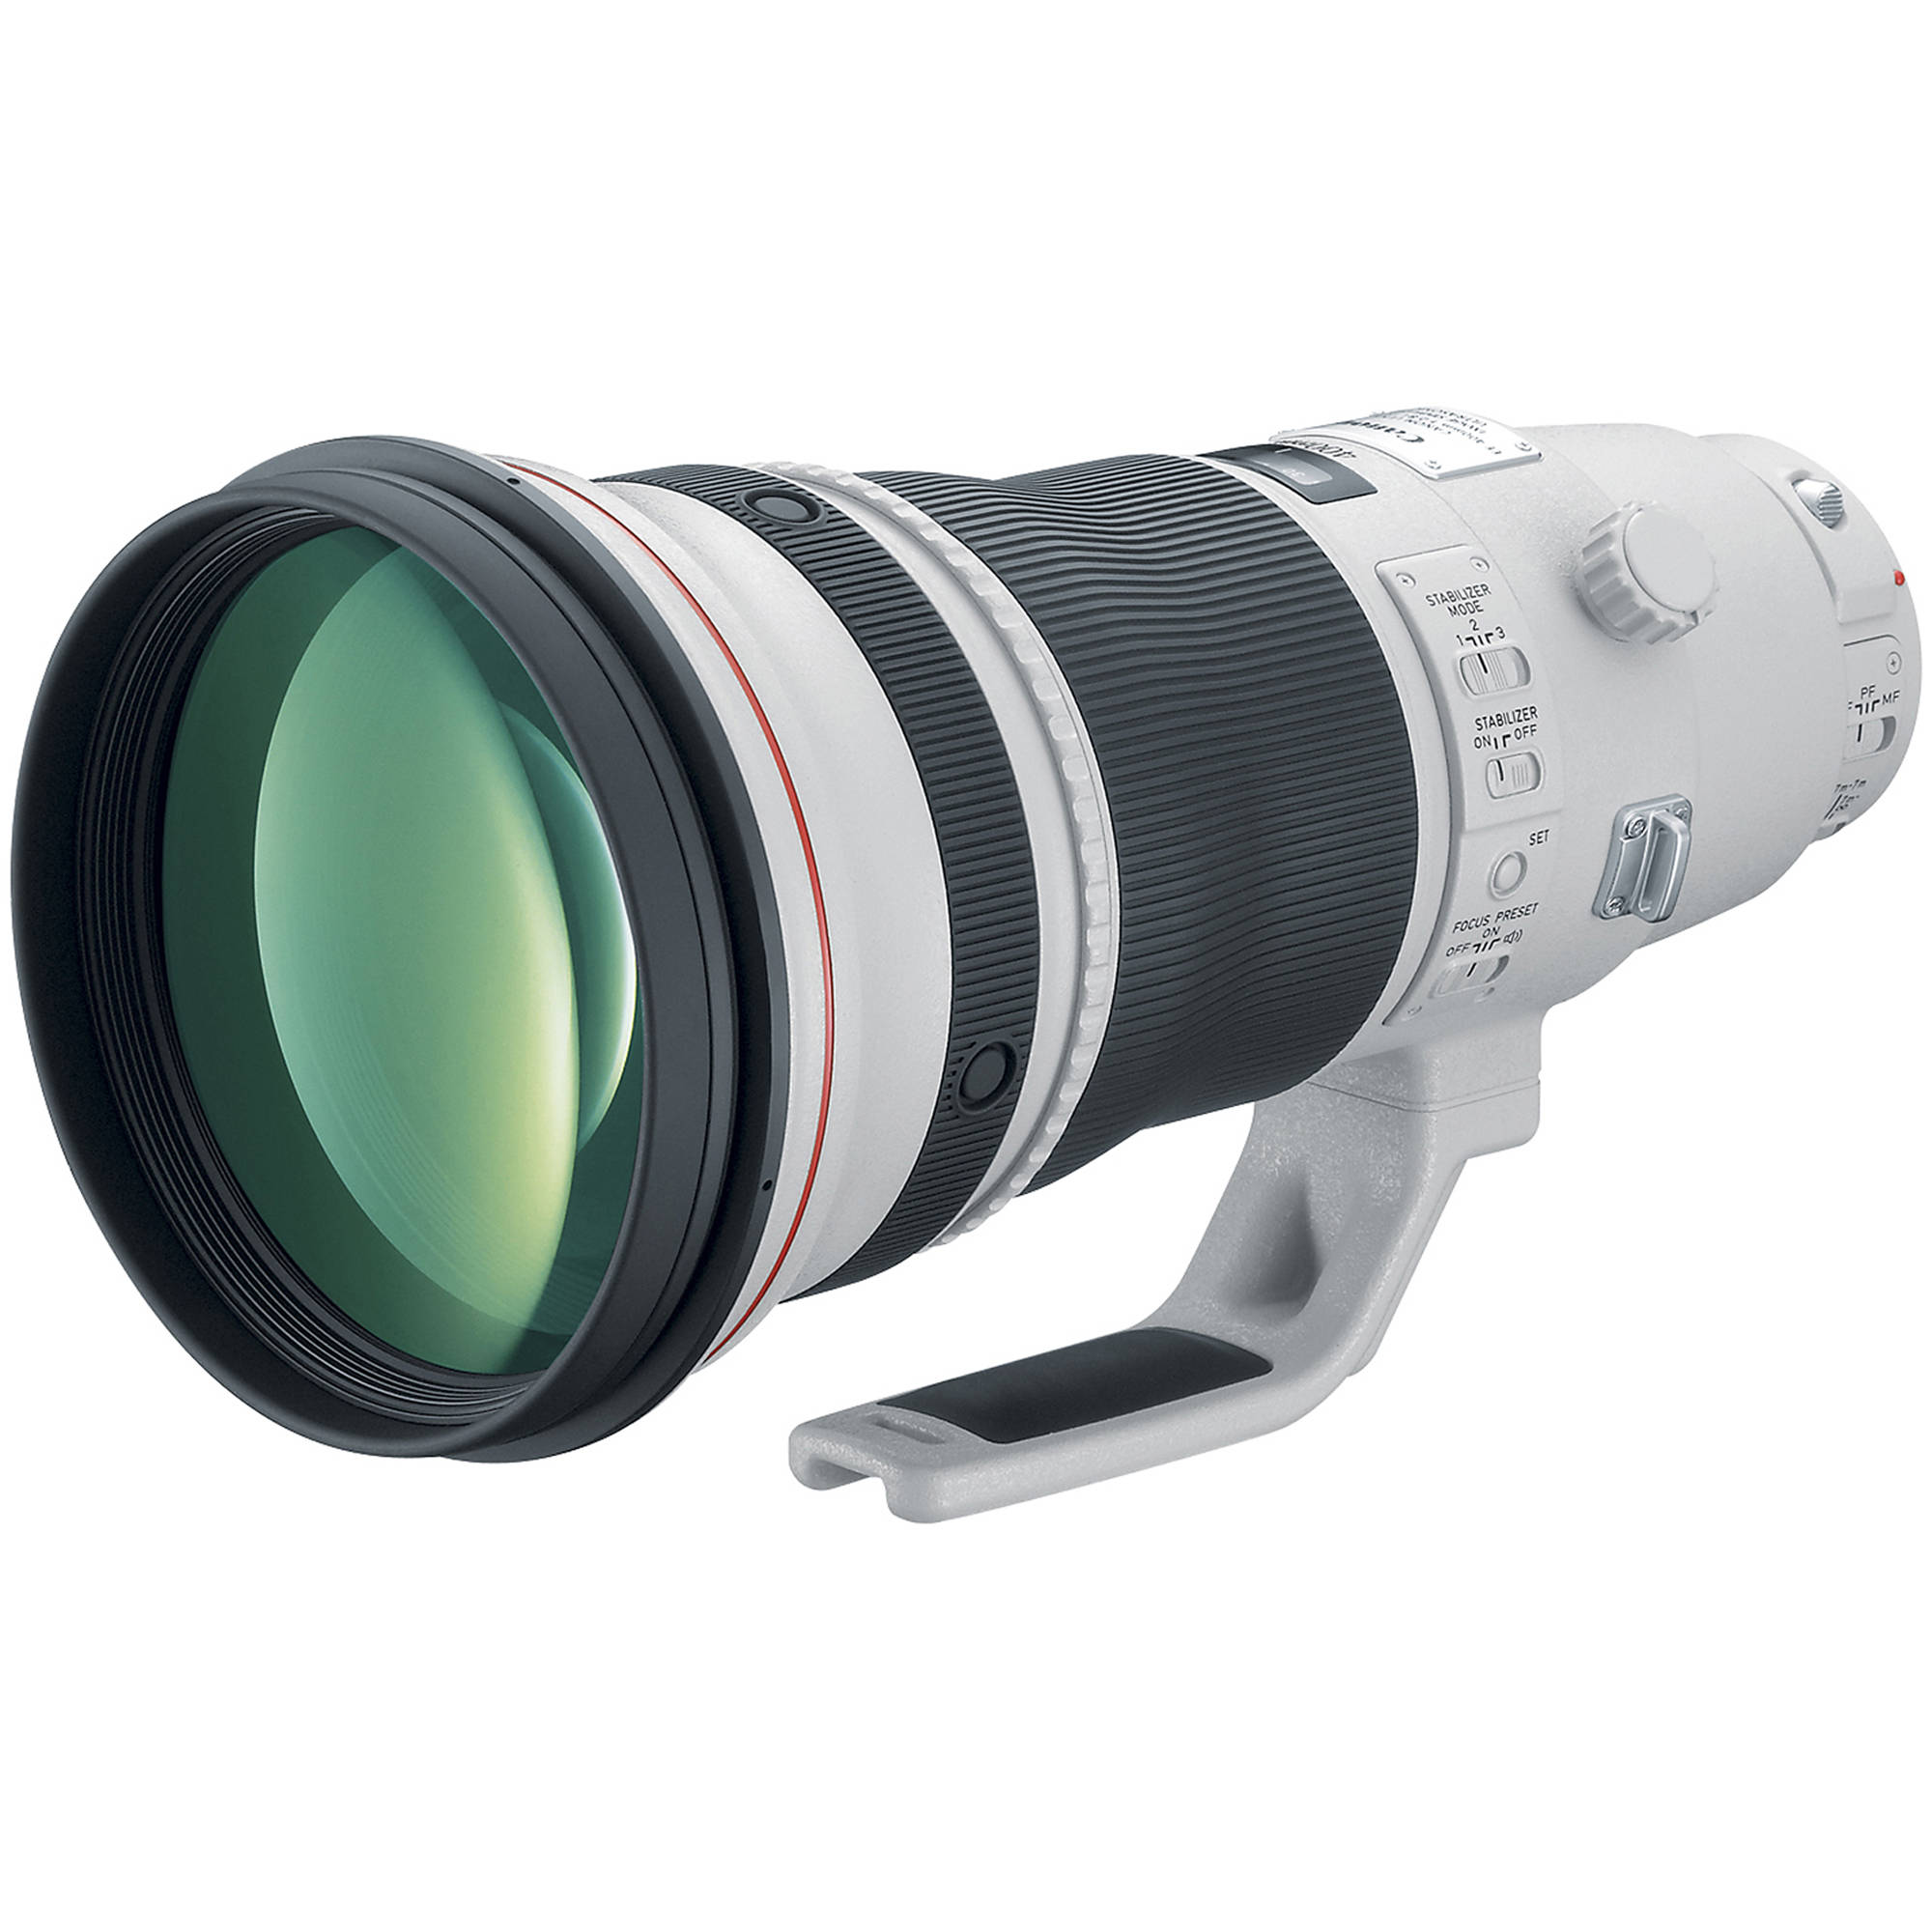 An example Canon EF 400mm f/2.8L IS II used